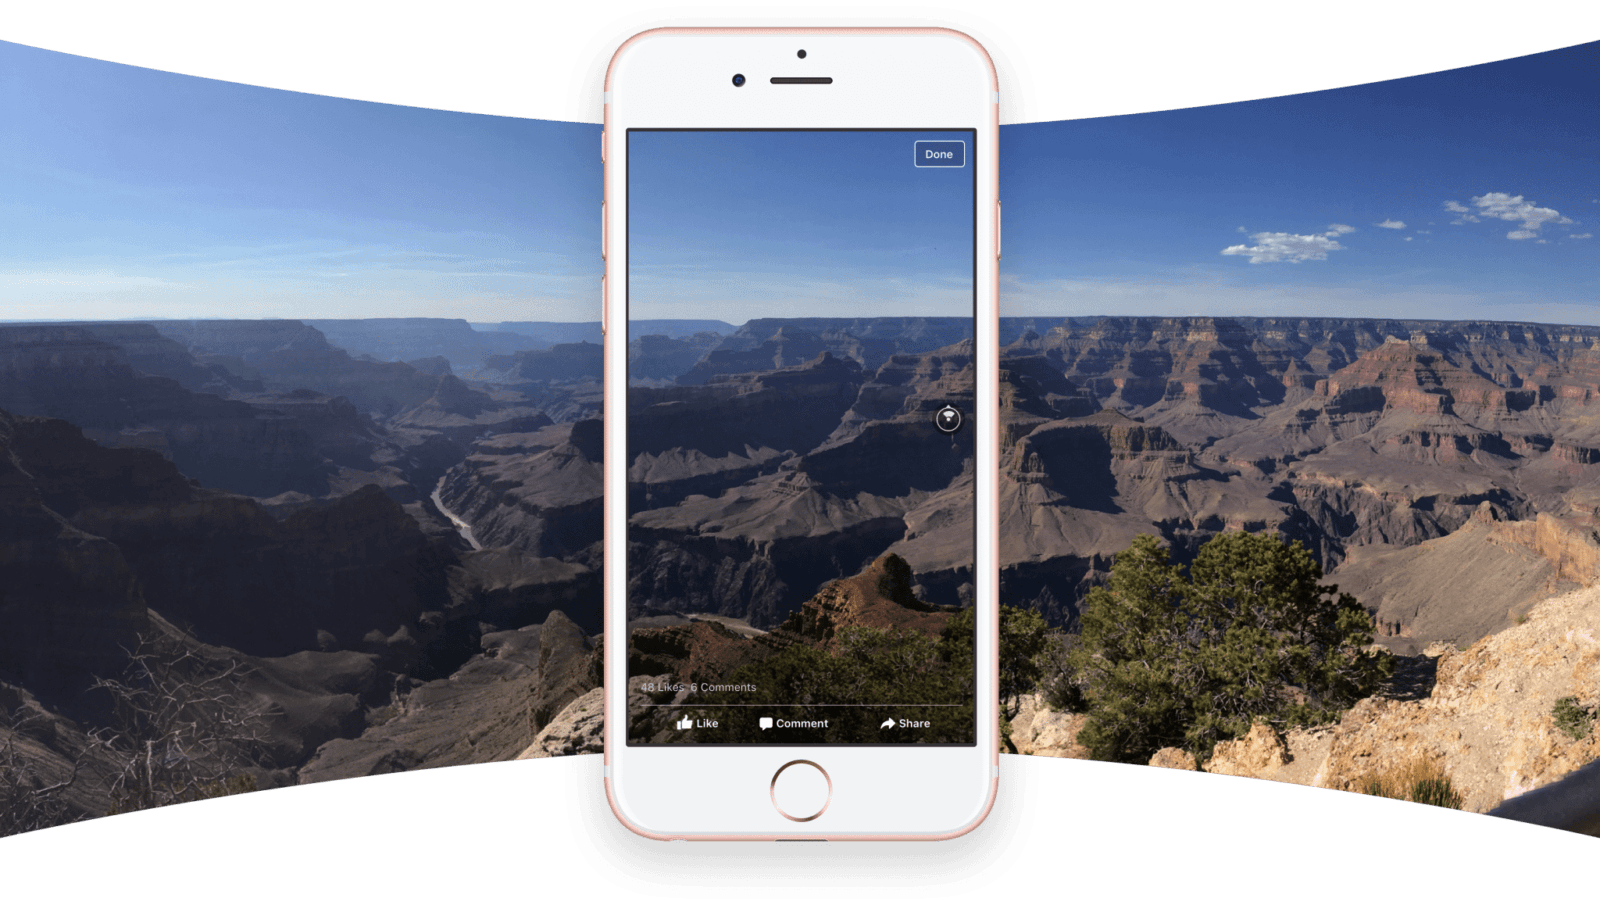 Tutorial to upload 360º photos to Facebook